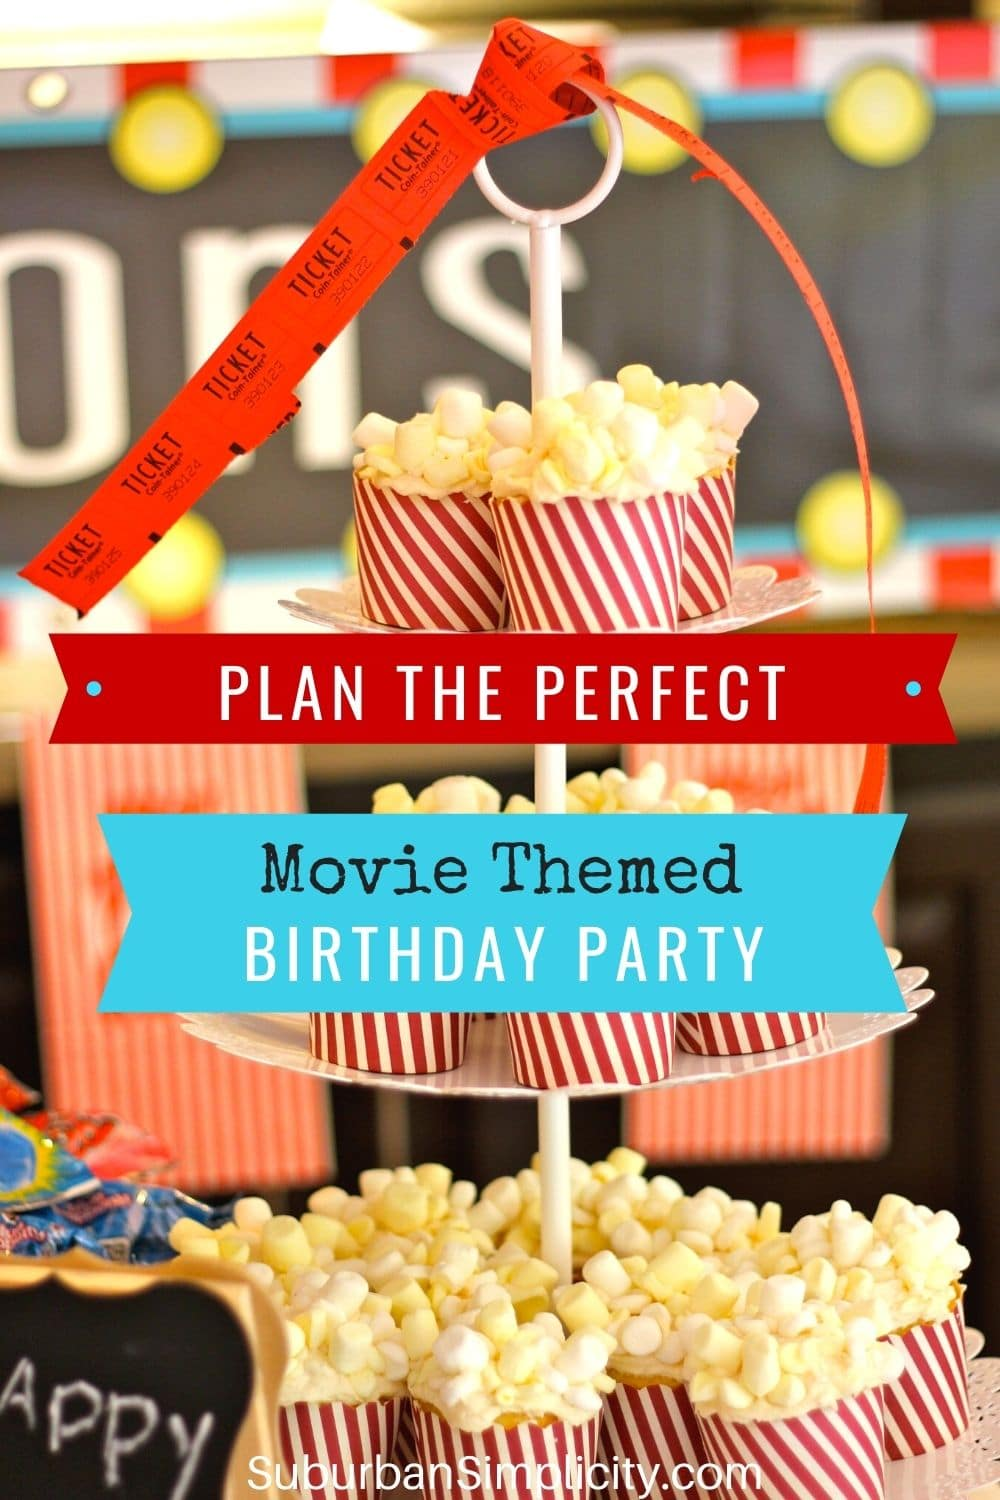 how to plan a movie-themed birthday party